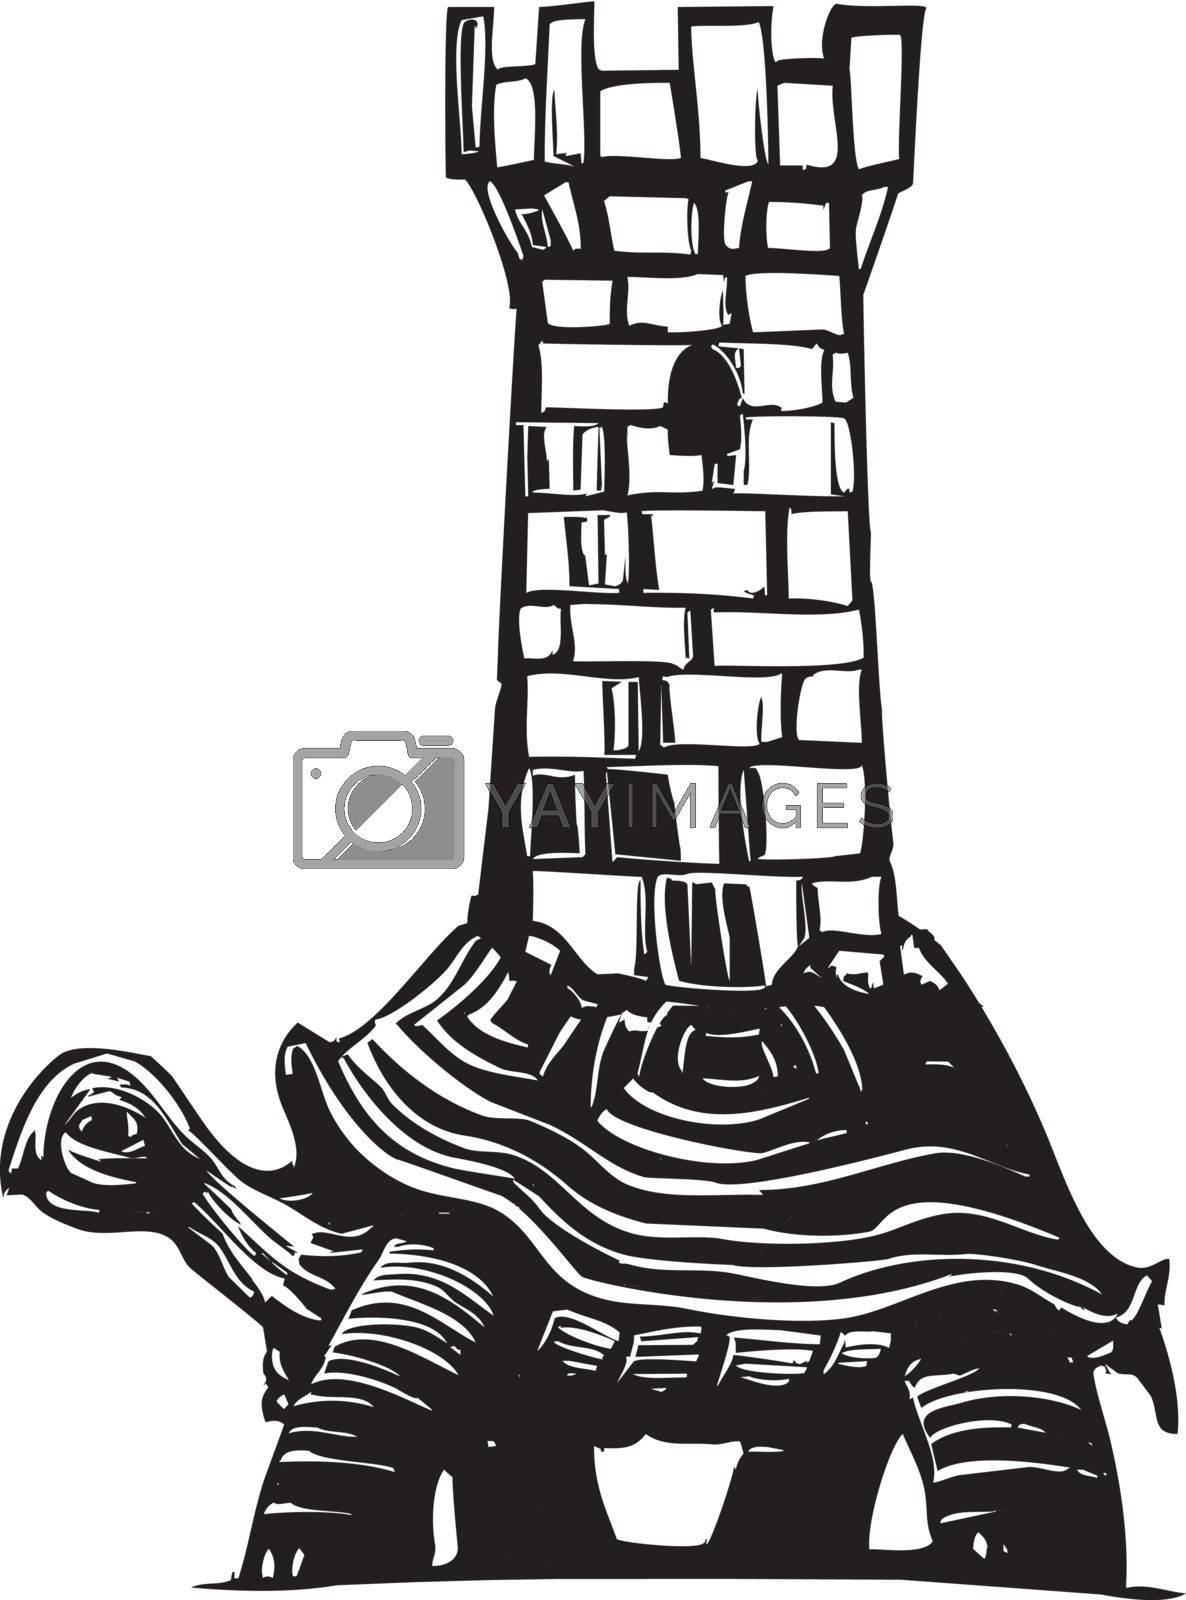 Woodcut style image of a turtle with a medieval fortress on his back.